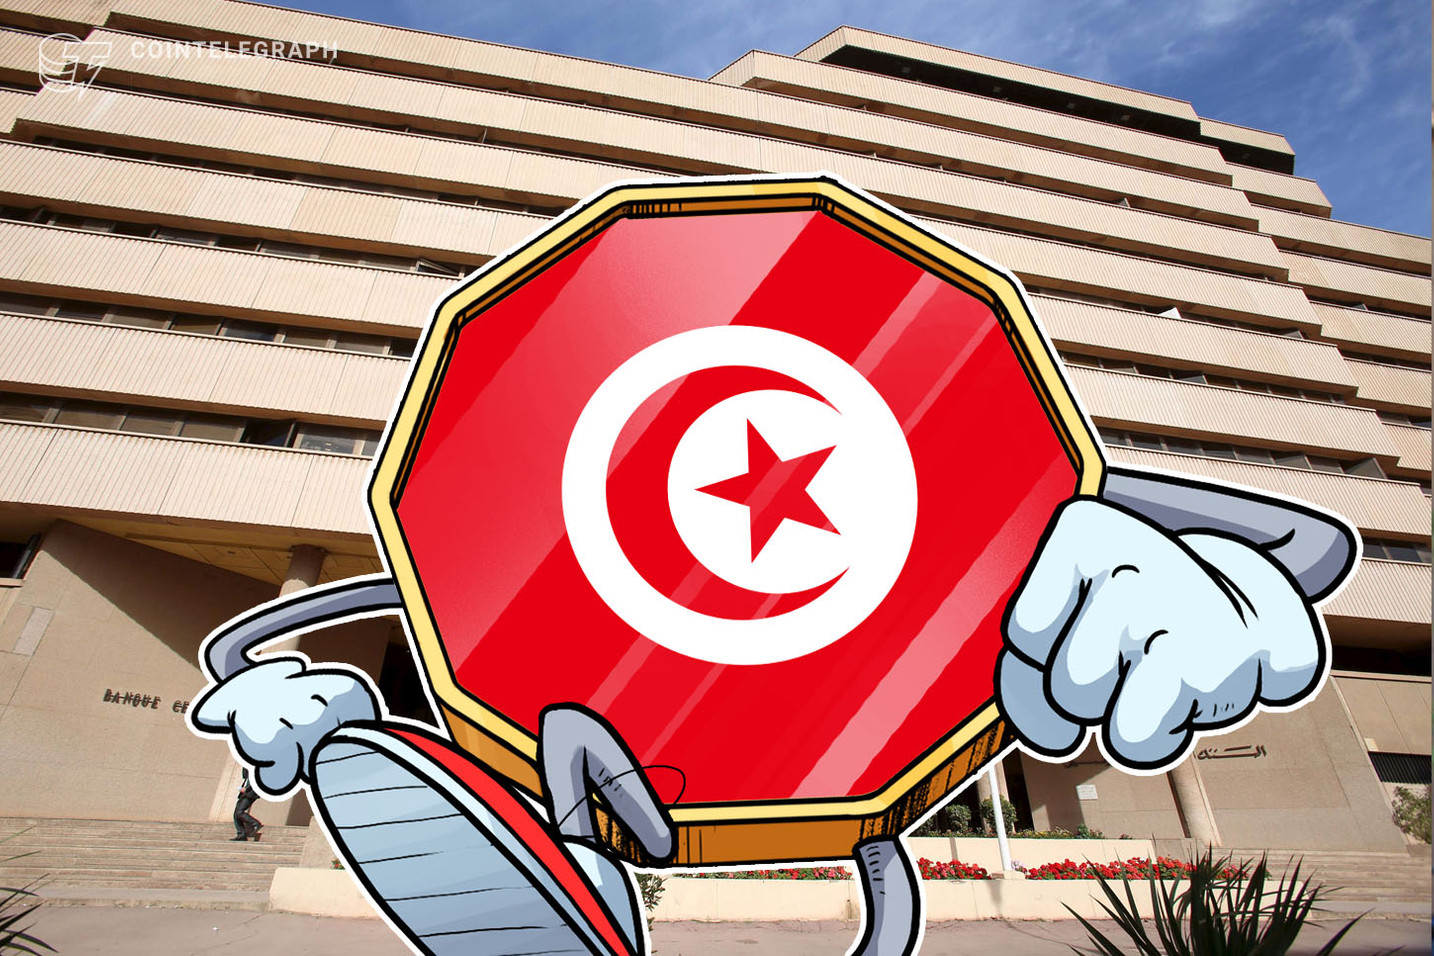 Tunisia to Launch E-Dinar National Currency Using Blockchain